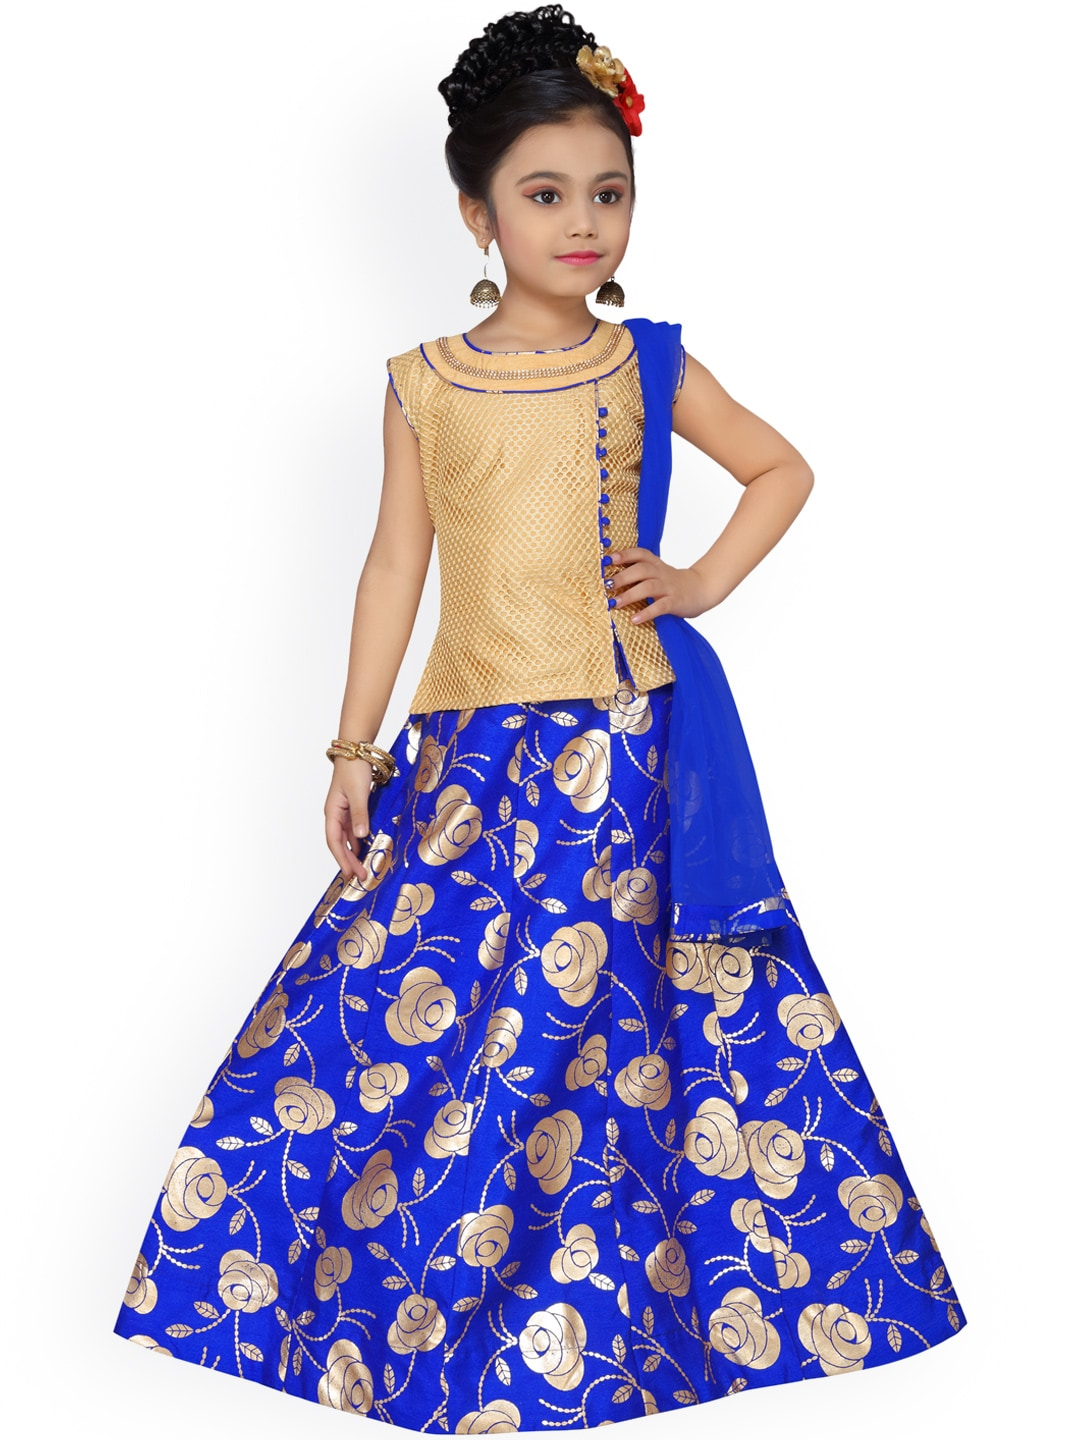 aad651e302 Kids Girls Lehenga Choli - Buy Kids Girls Lehenga Choli online in India